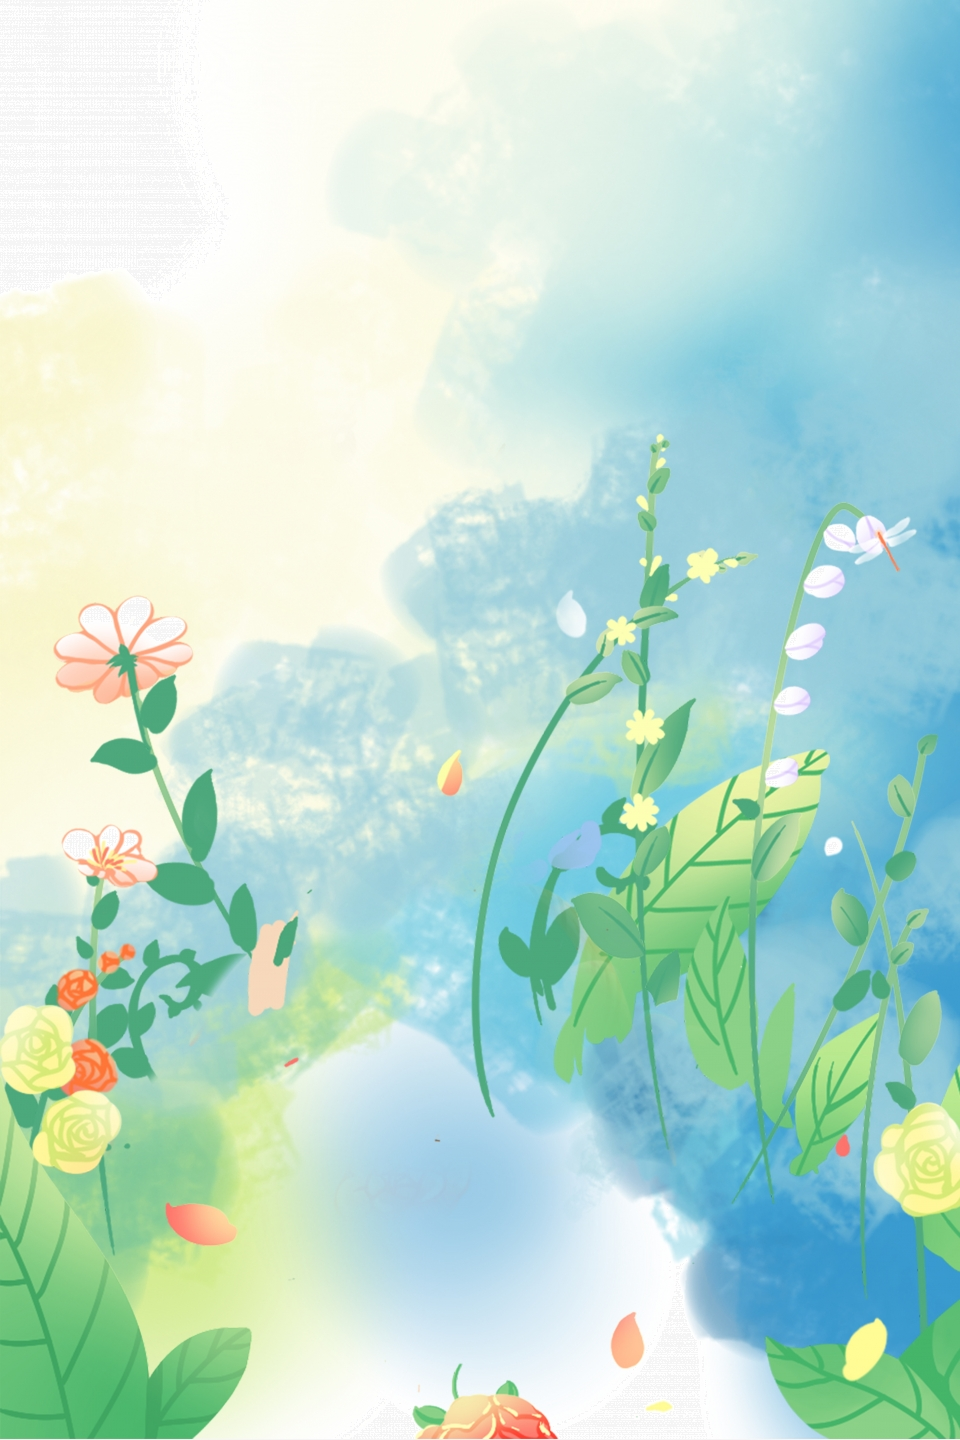 Aesthetic Natural Flower Spring Simple Spring Dreamy